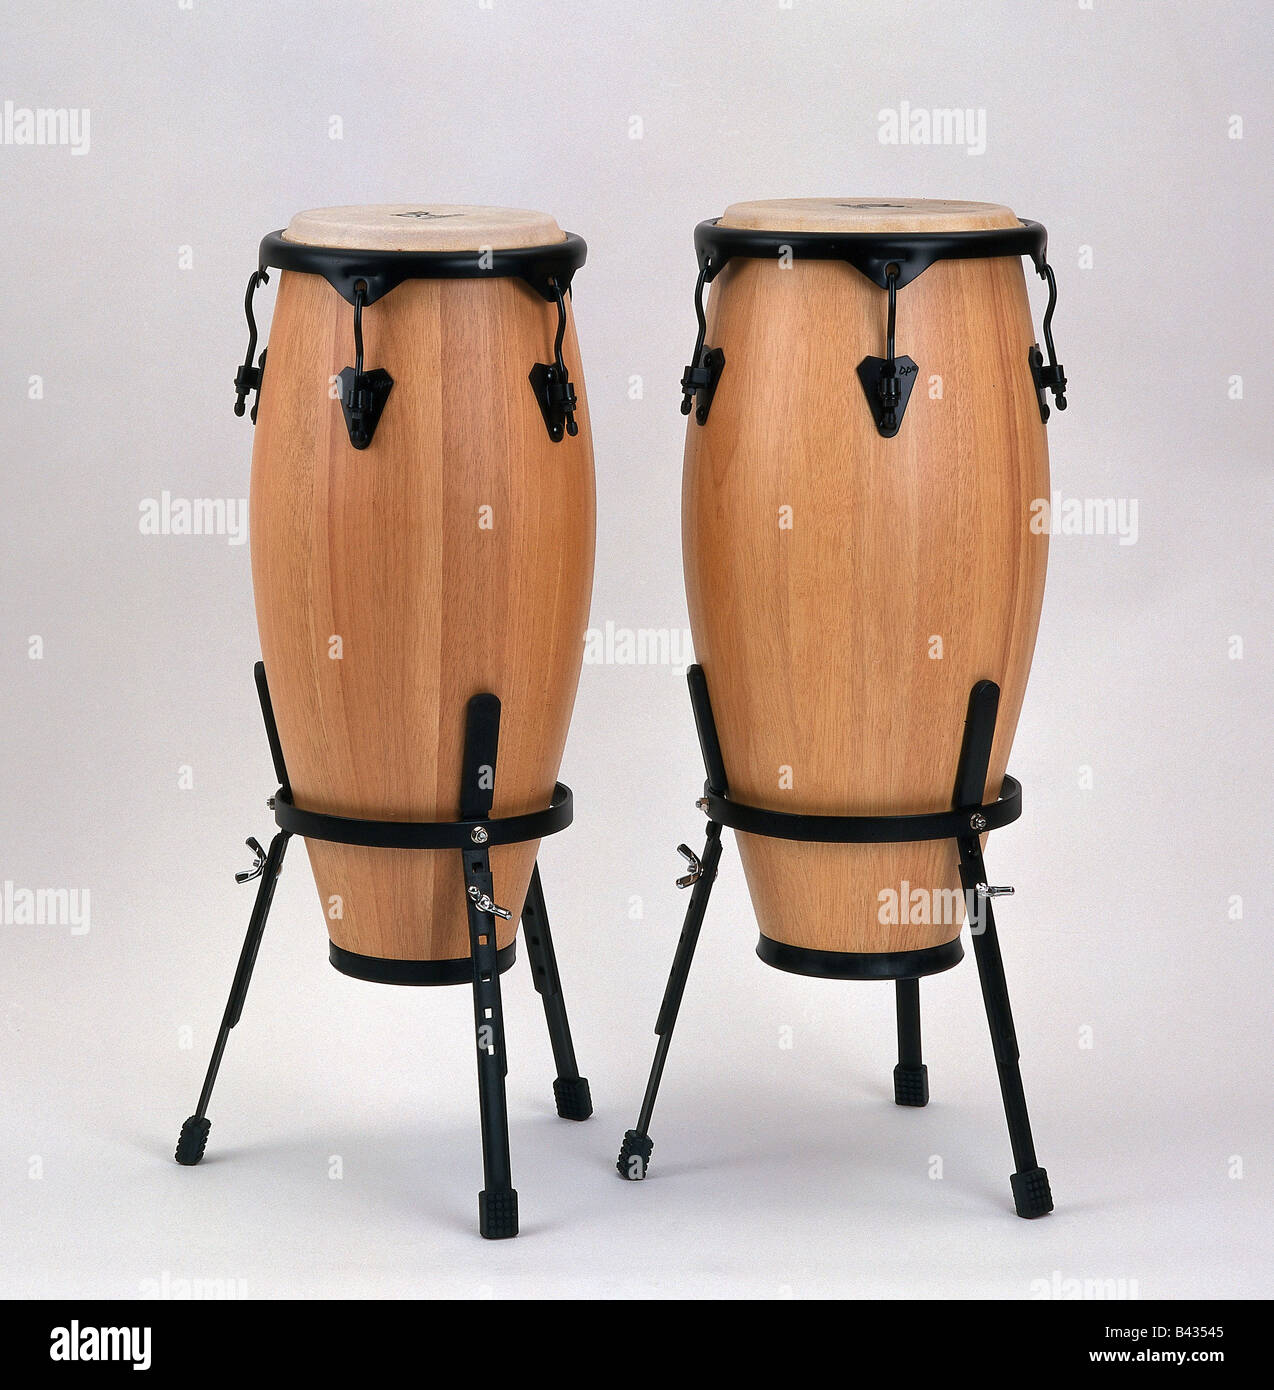 music instruments drums conga percussion instrument congas